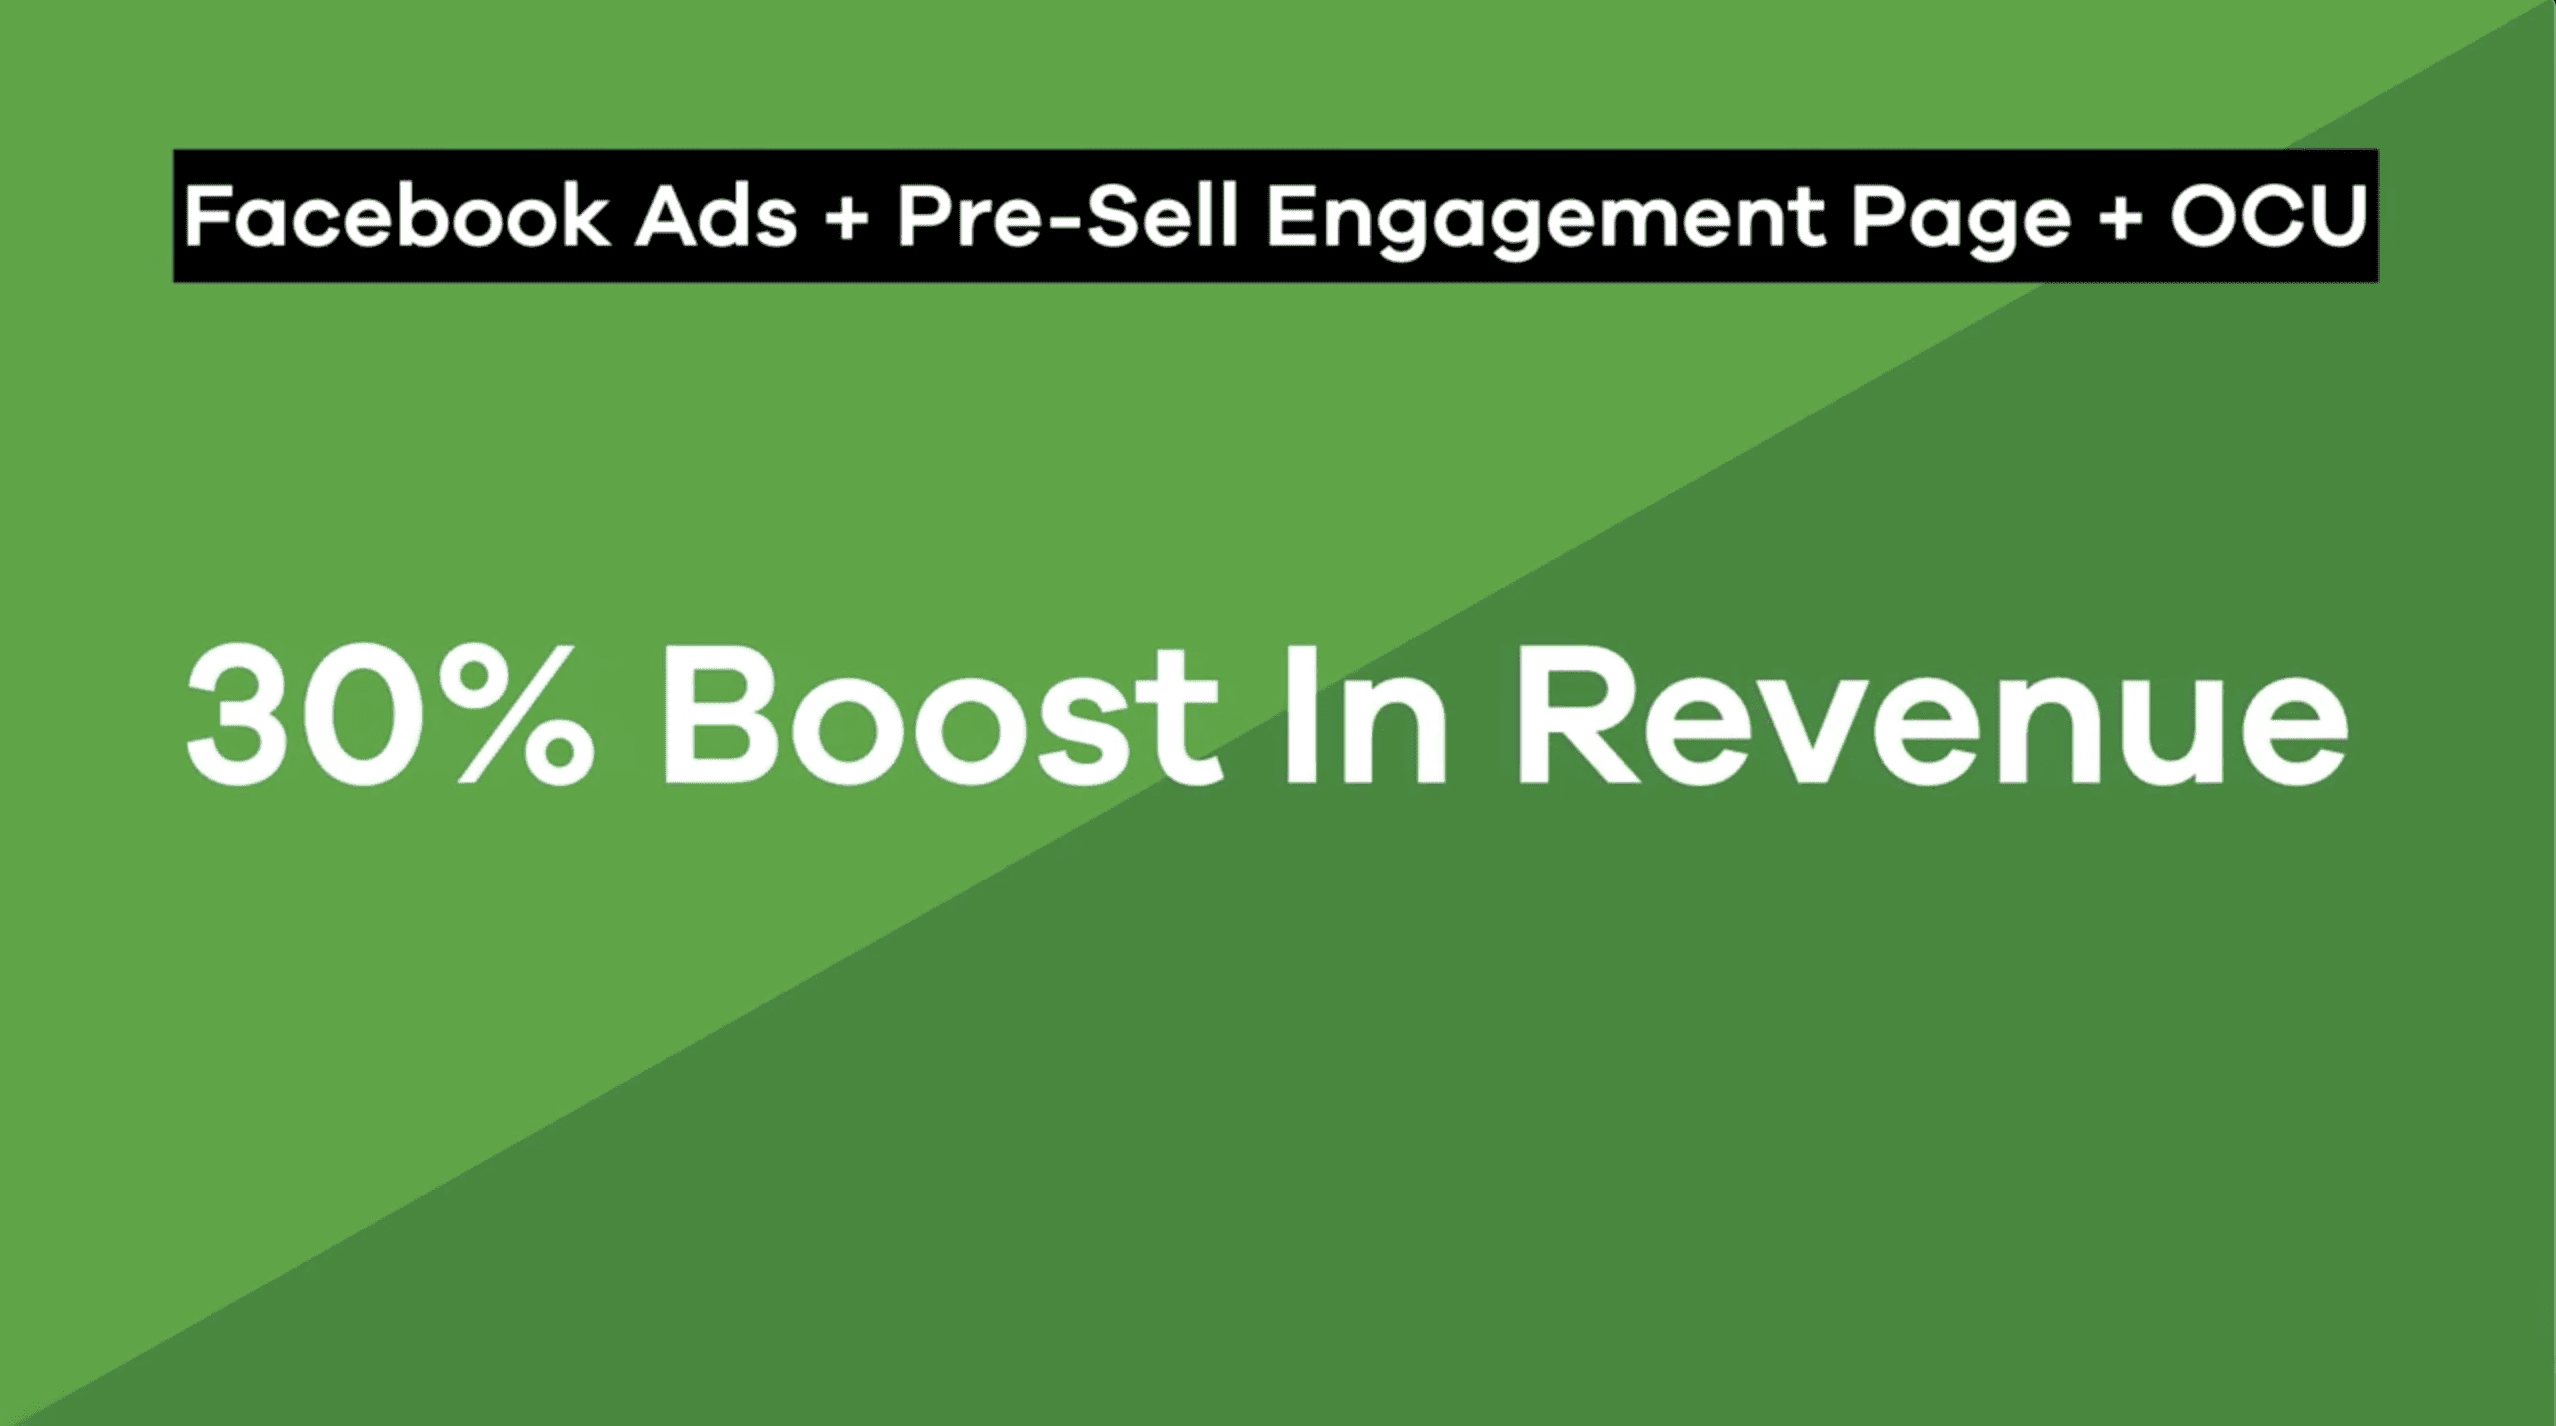 30% Boost in revenue